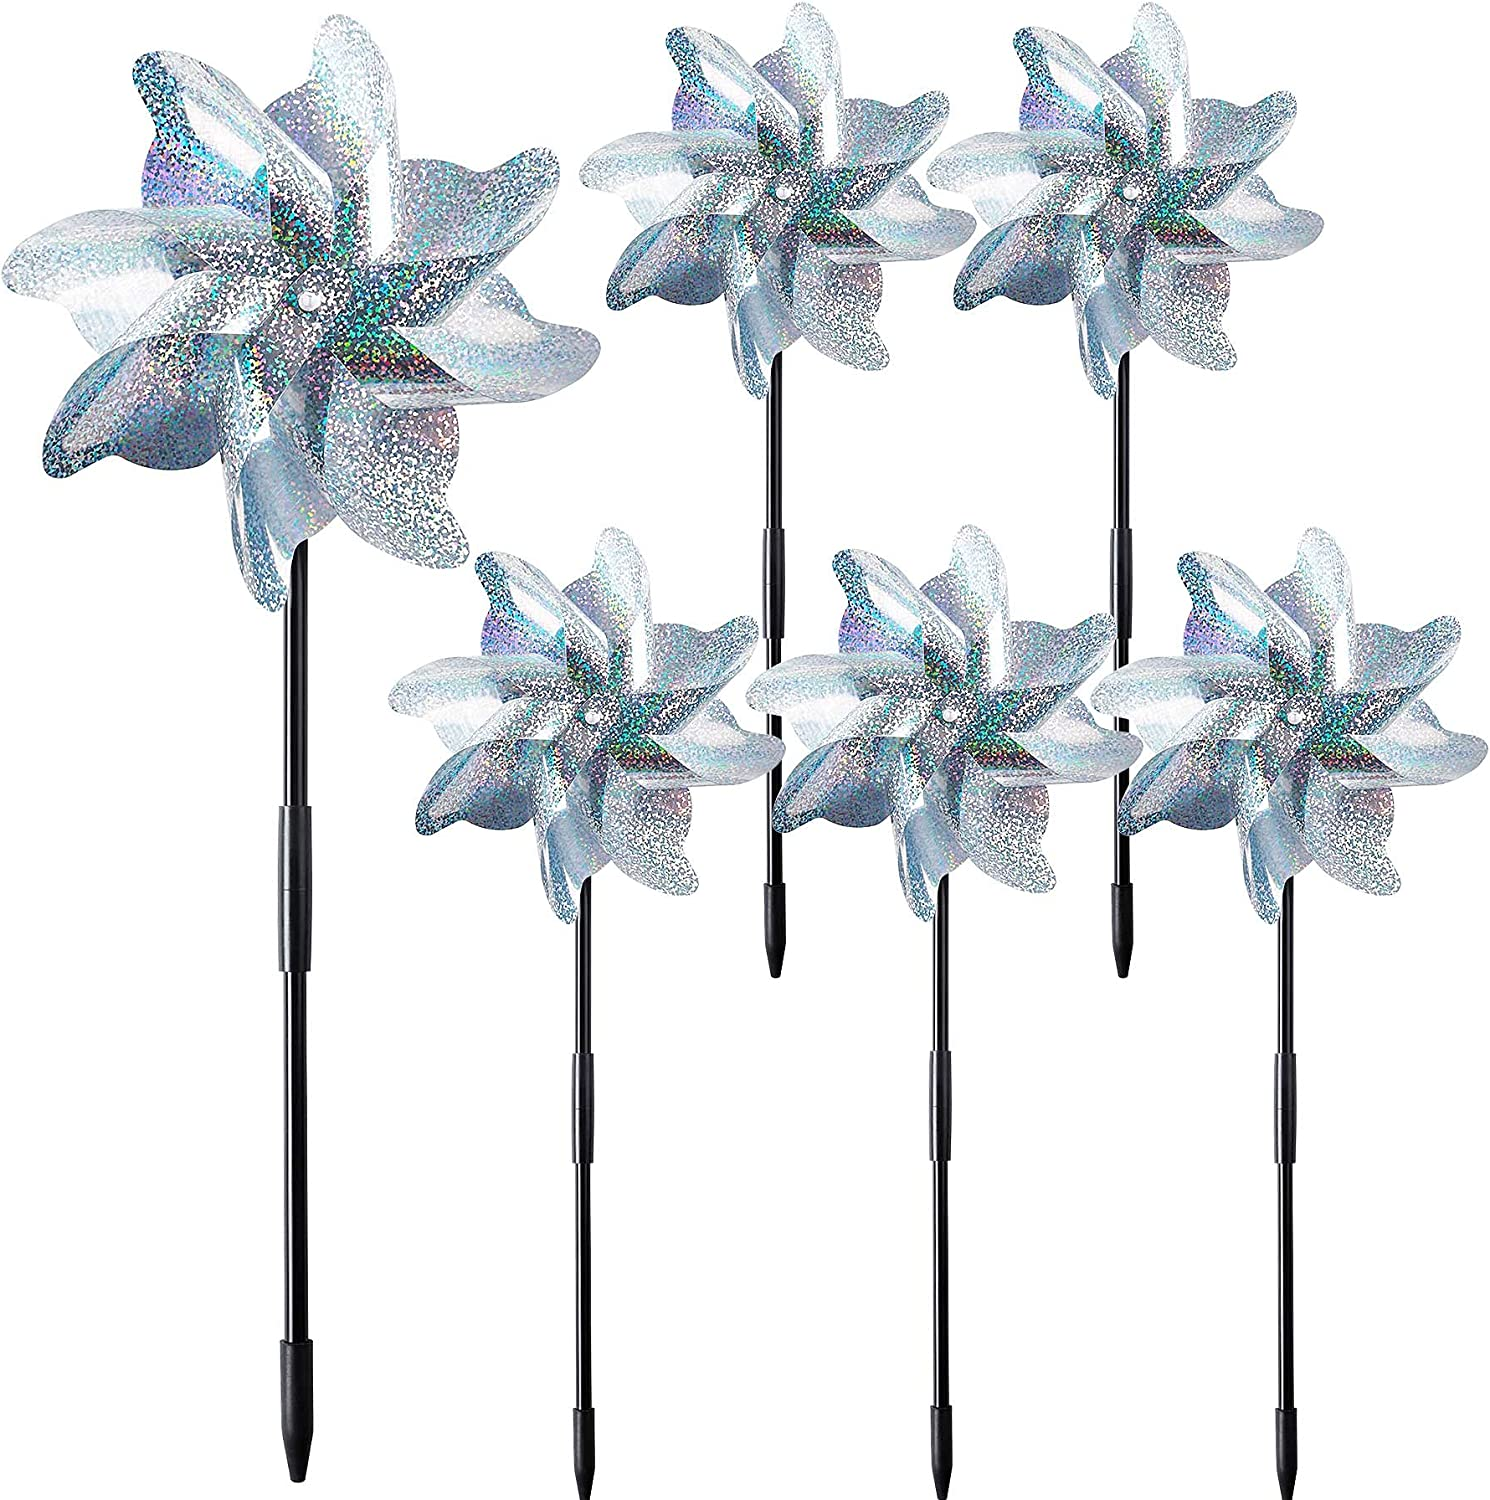 NOVWANG 6 PCS Reflective Pinwheels with Stakes, Extra Sparkly Pin Wheel for Garden Yard Decor, Bird and Animal Deterrent Device to Scare Birds Away from Patio Farm